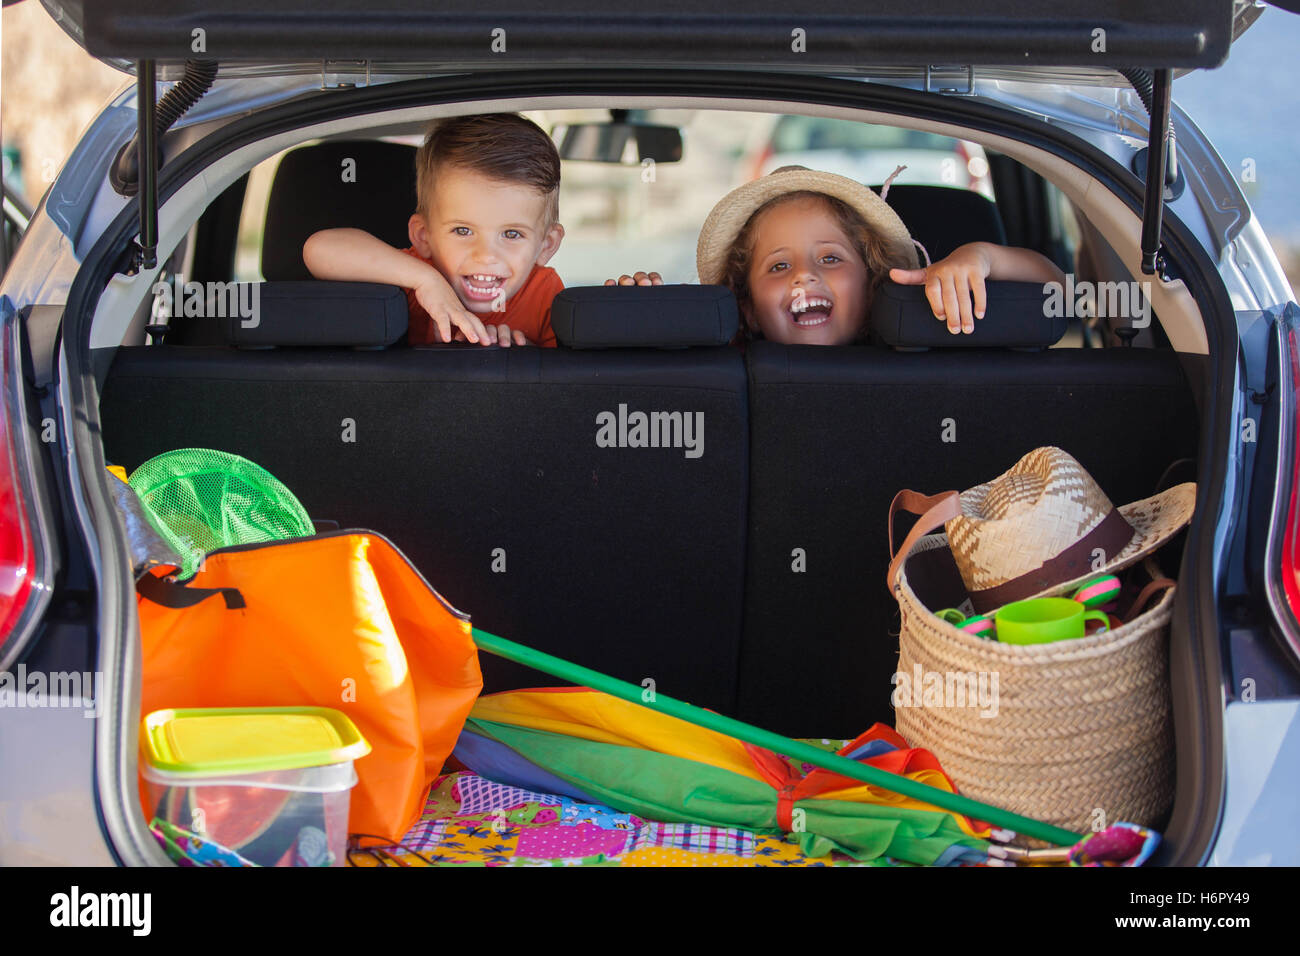 excited kids in car arriving at summer vacation - Stock Image